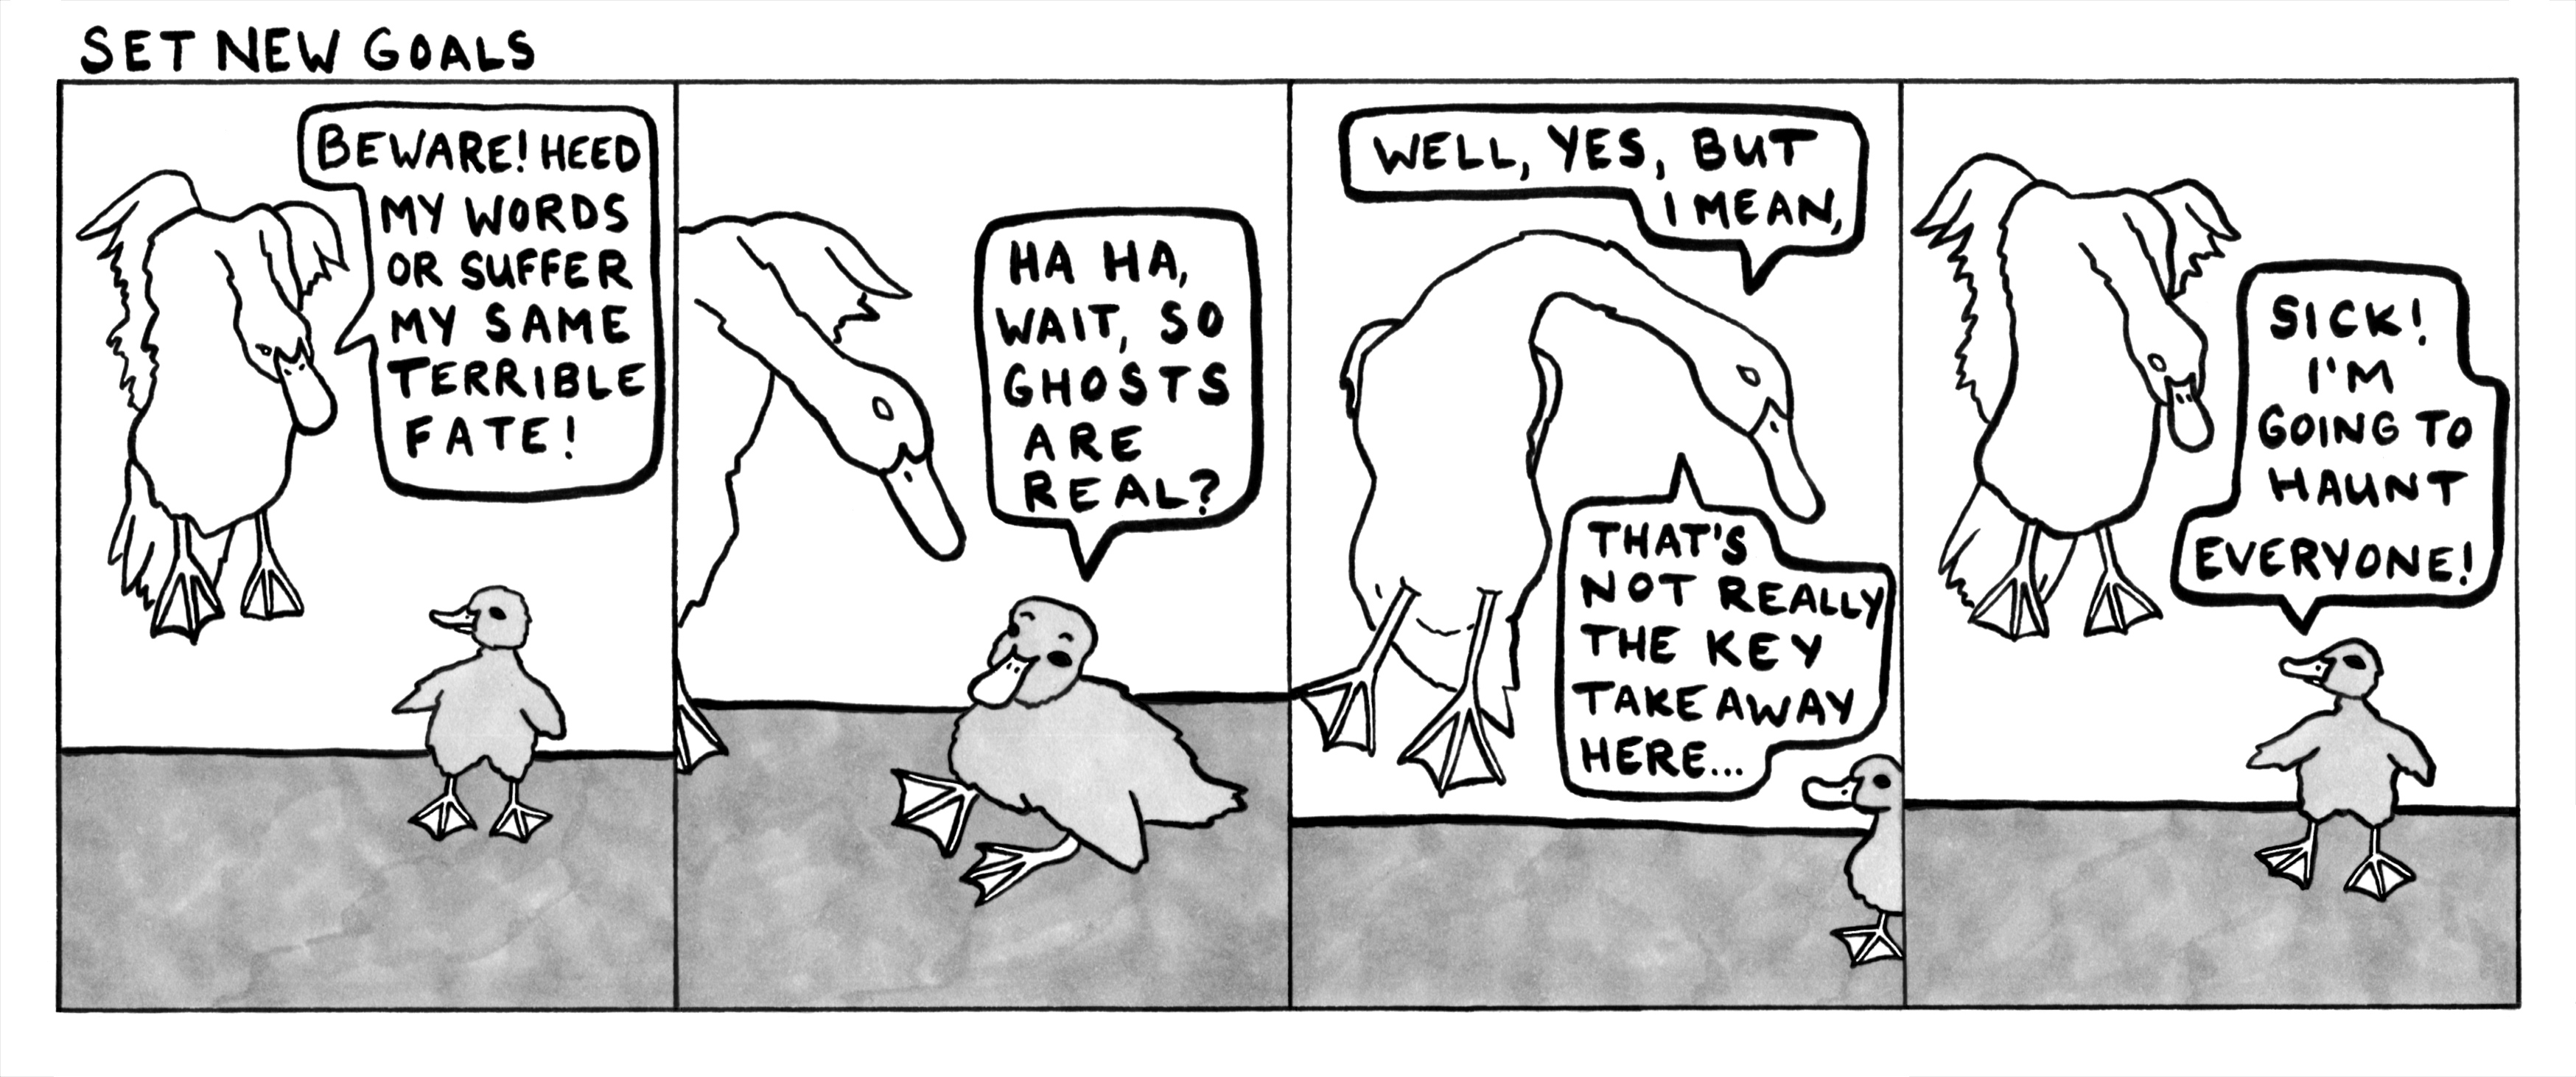 Being a ghost's not so scary if you're already haunted